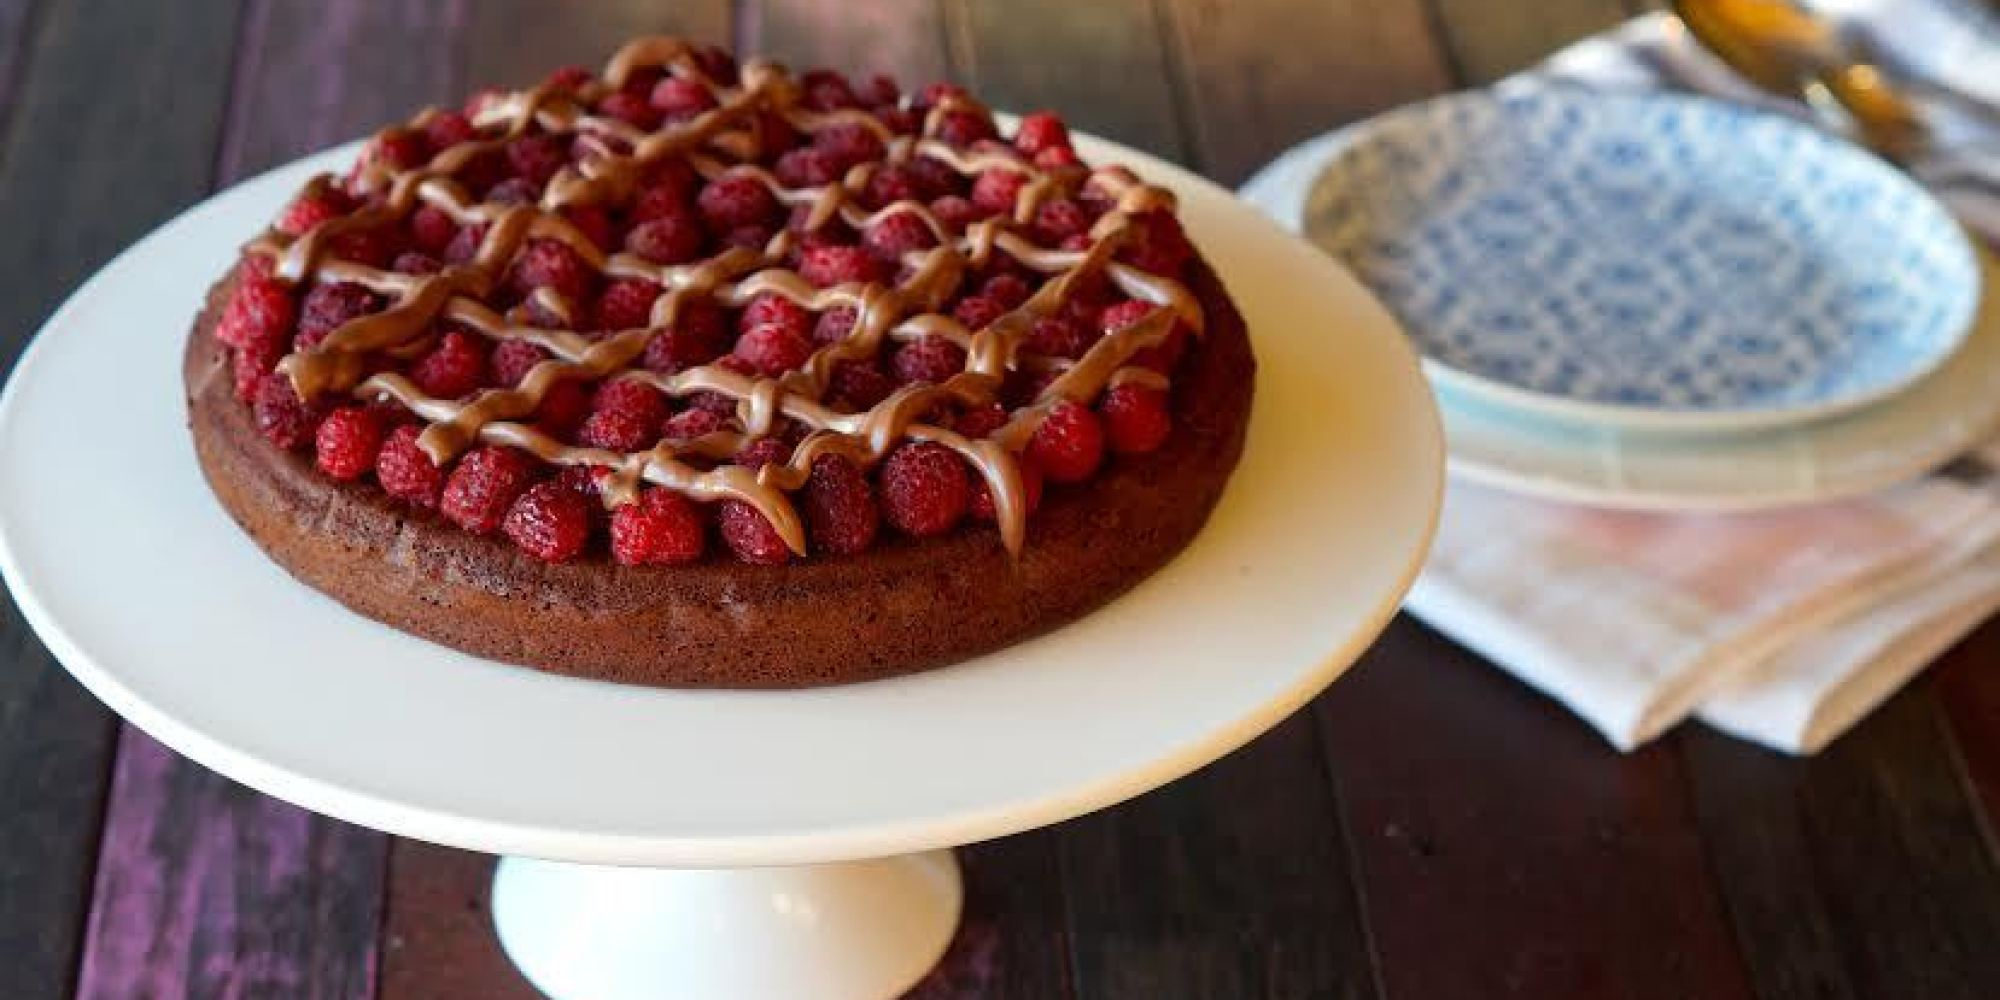 paleo dessert recipes chocolate raspberry ganache cake. Black Bedroom Furniture Sets. Home Design Ideas